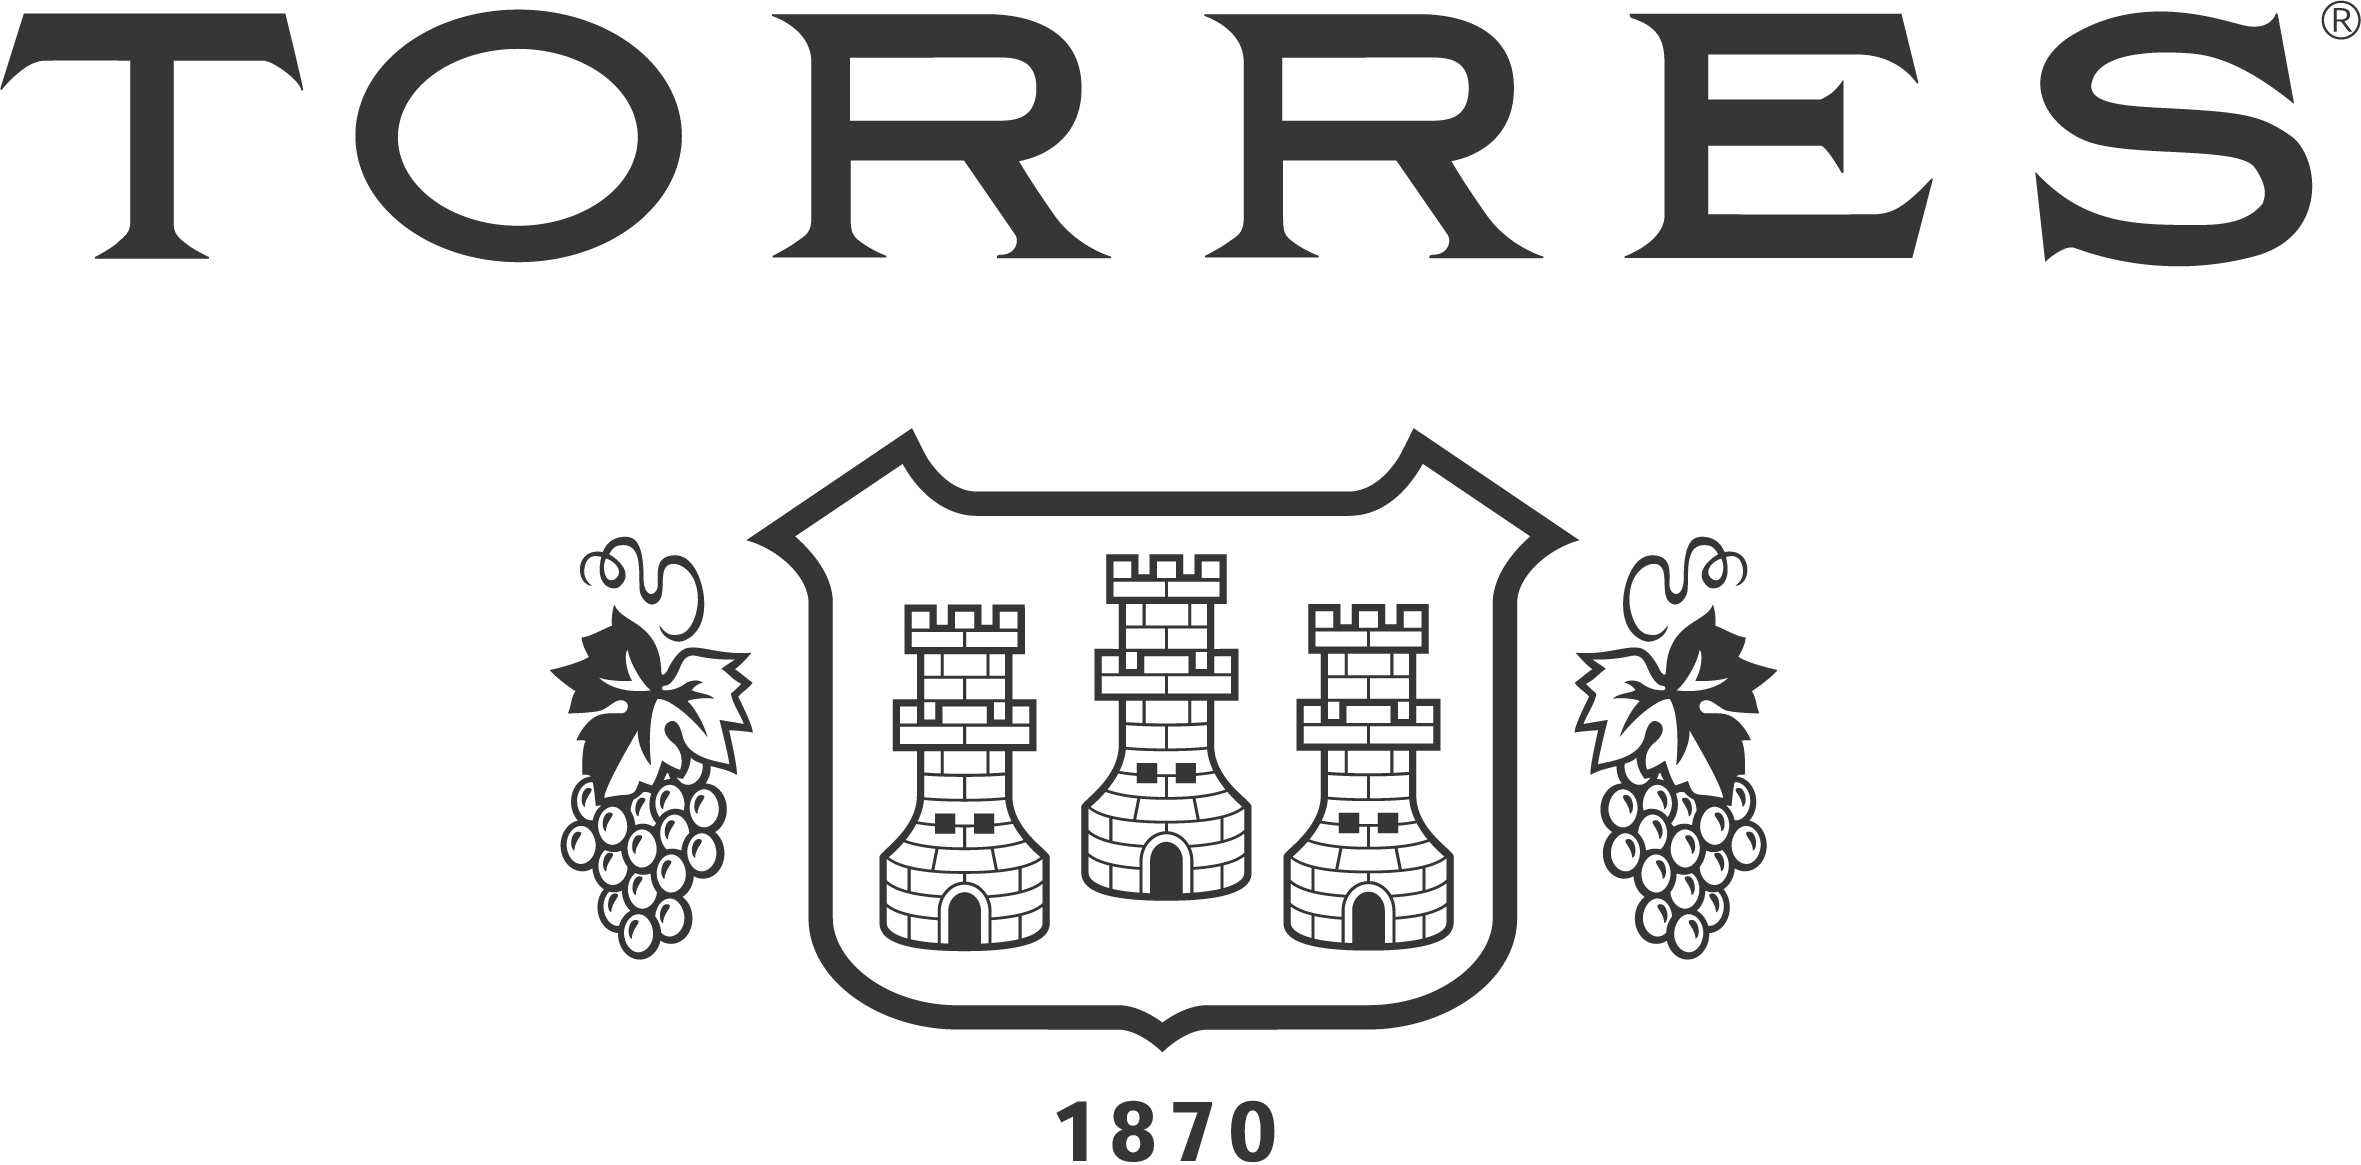 Torres logo